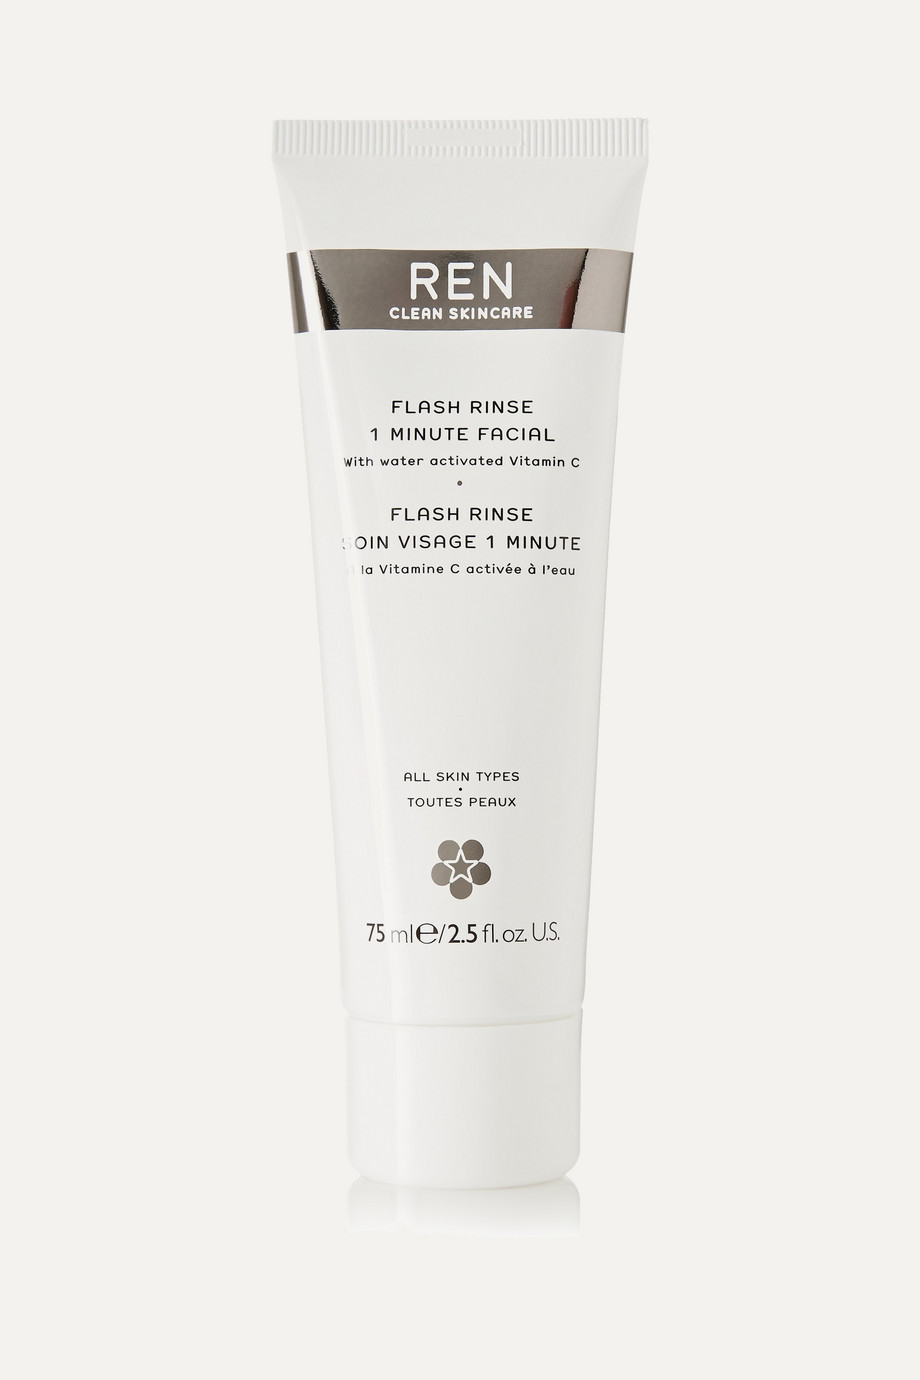 Flash Rinse 1 Minute Facial, 75ml, by Ren Skincare